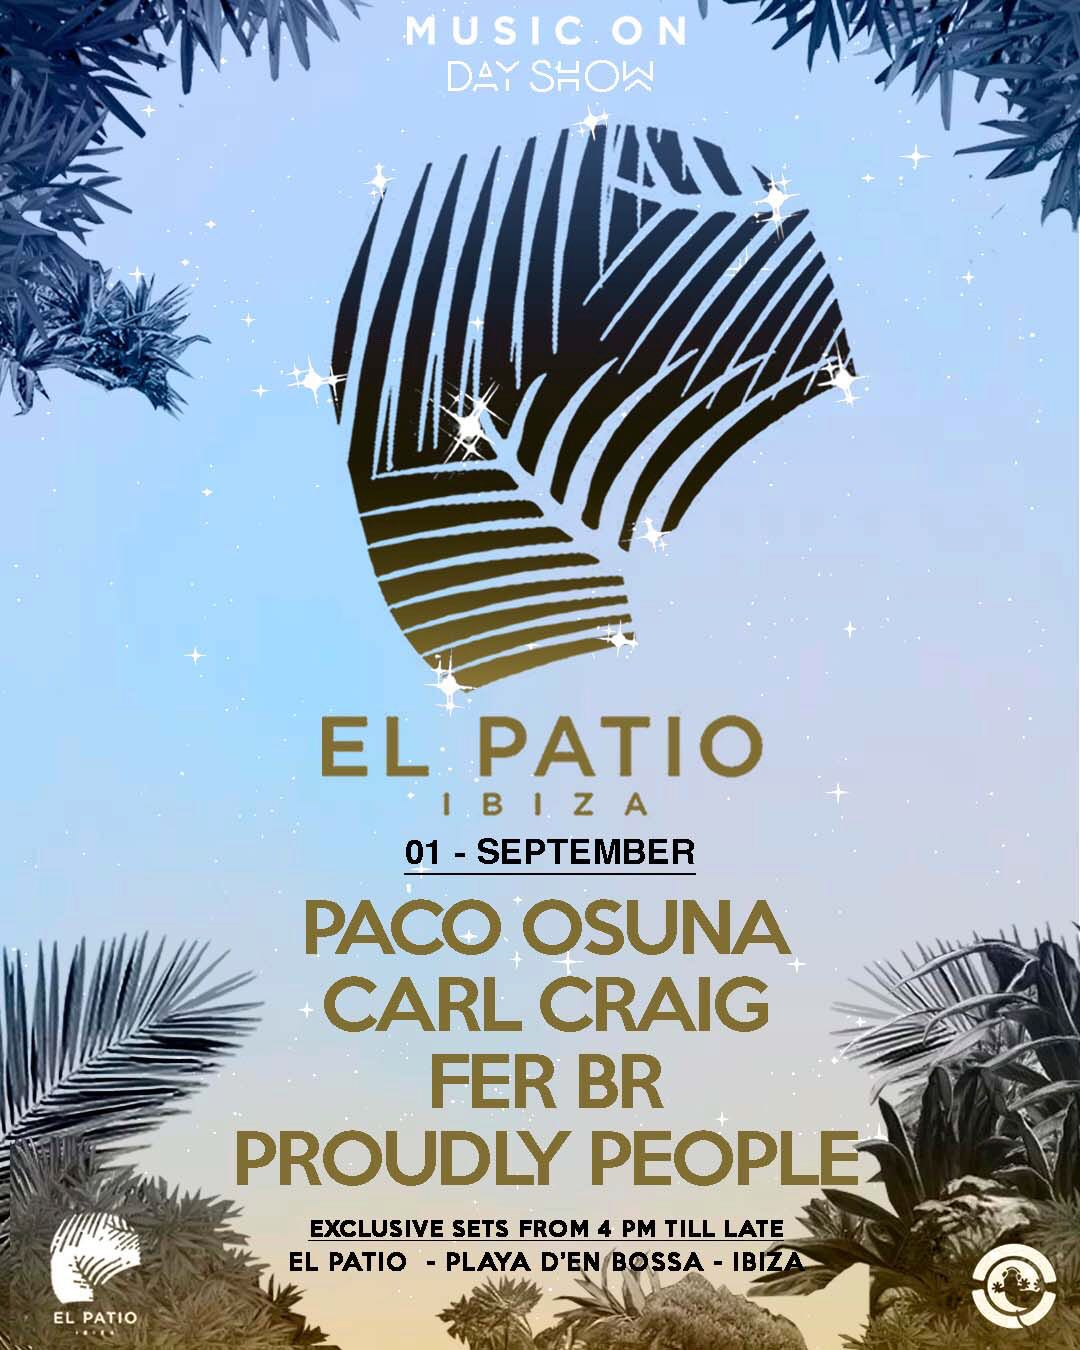 Carl Craig, Paco Osuna, more play Marco Carola's Music On Day Show this weekend